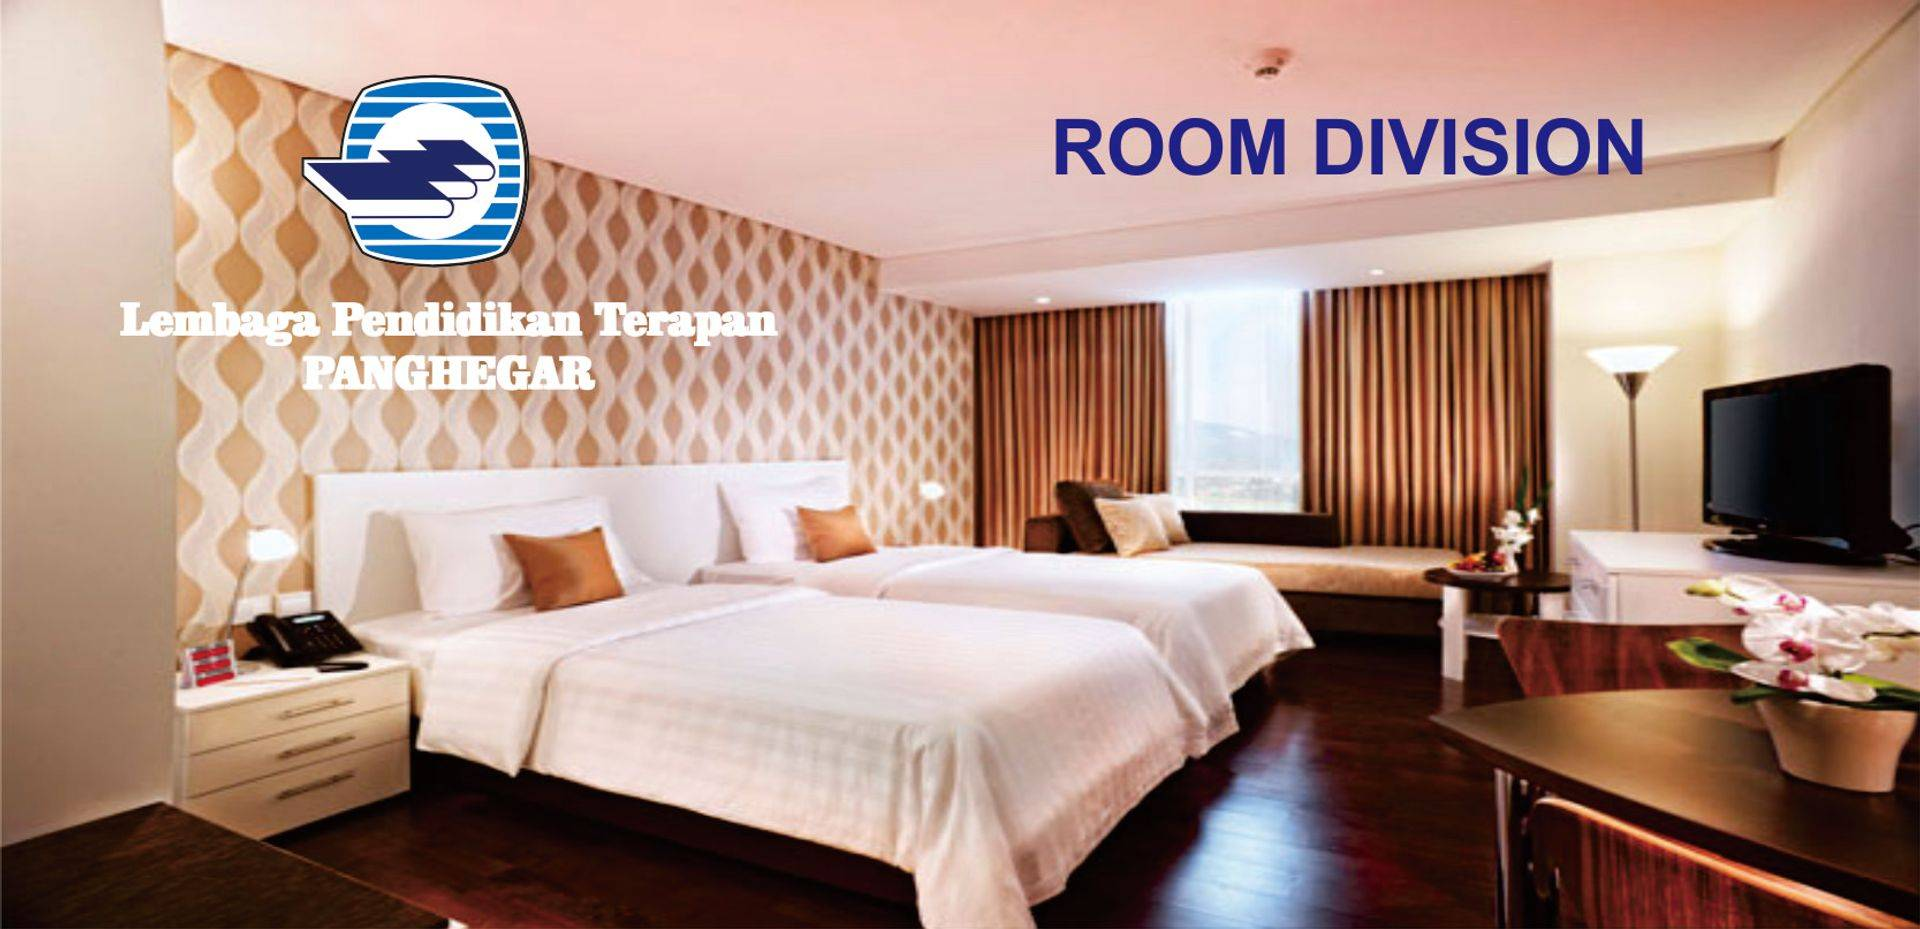 Room Division - House Keeping